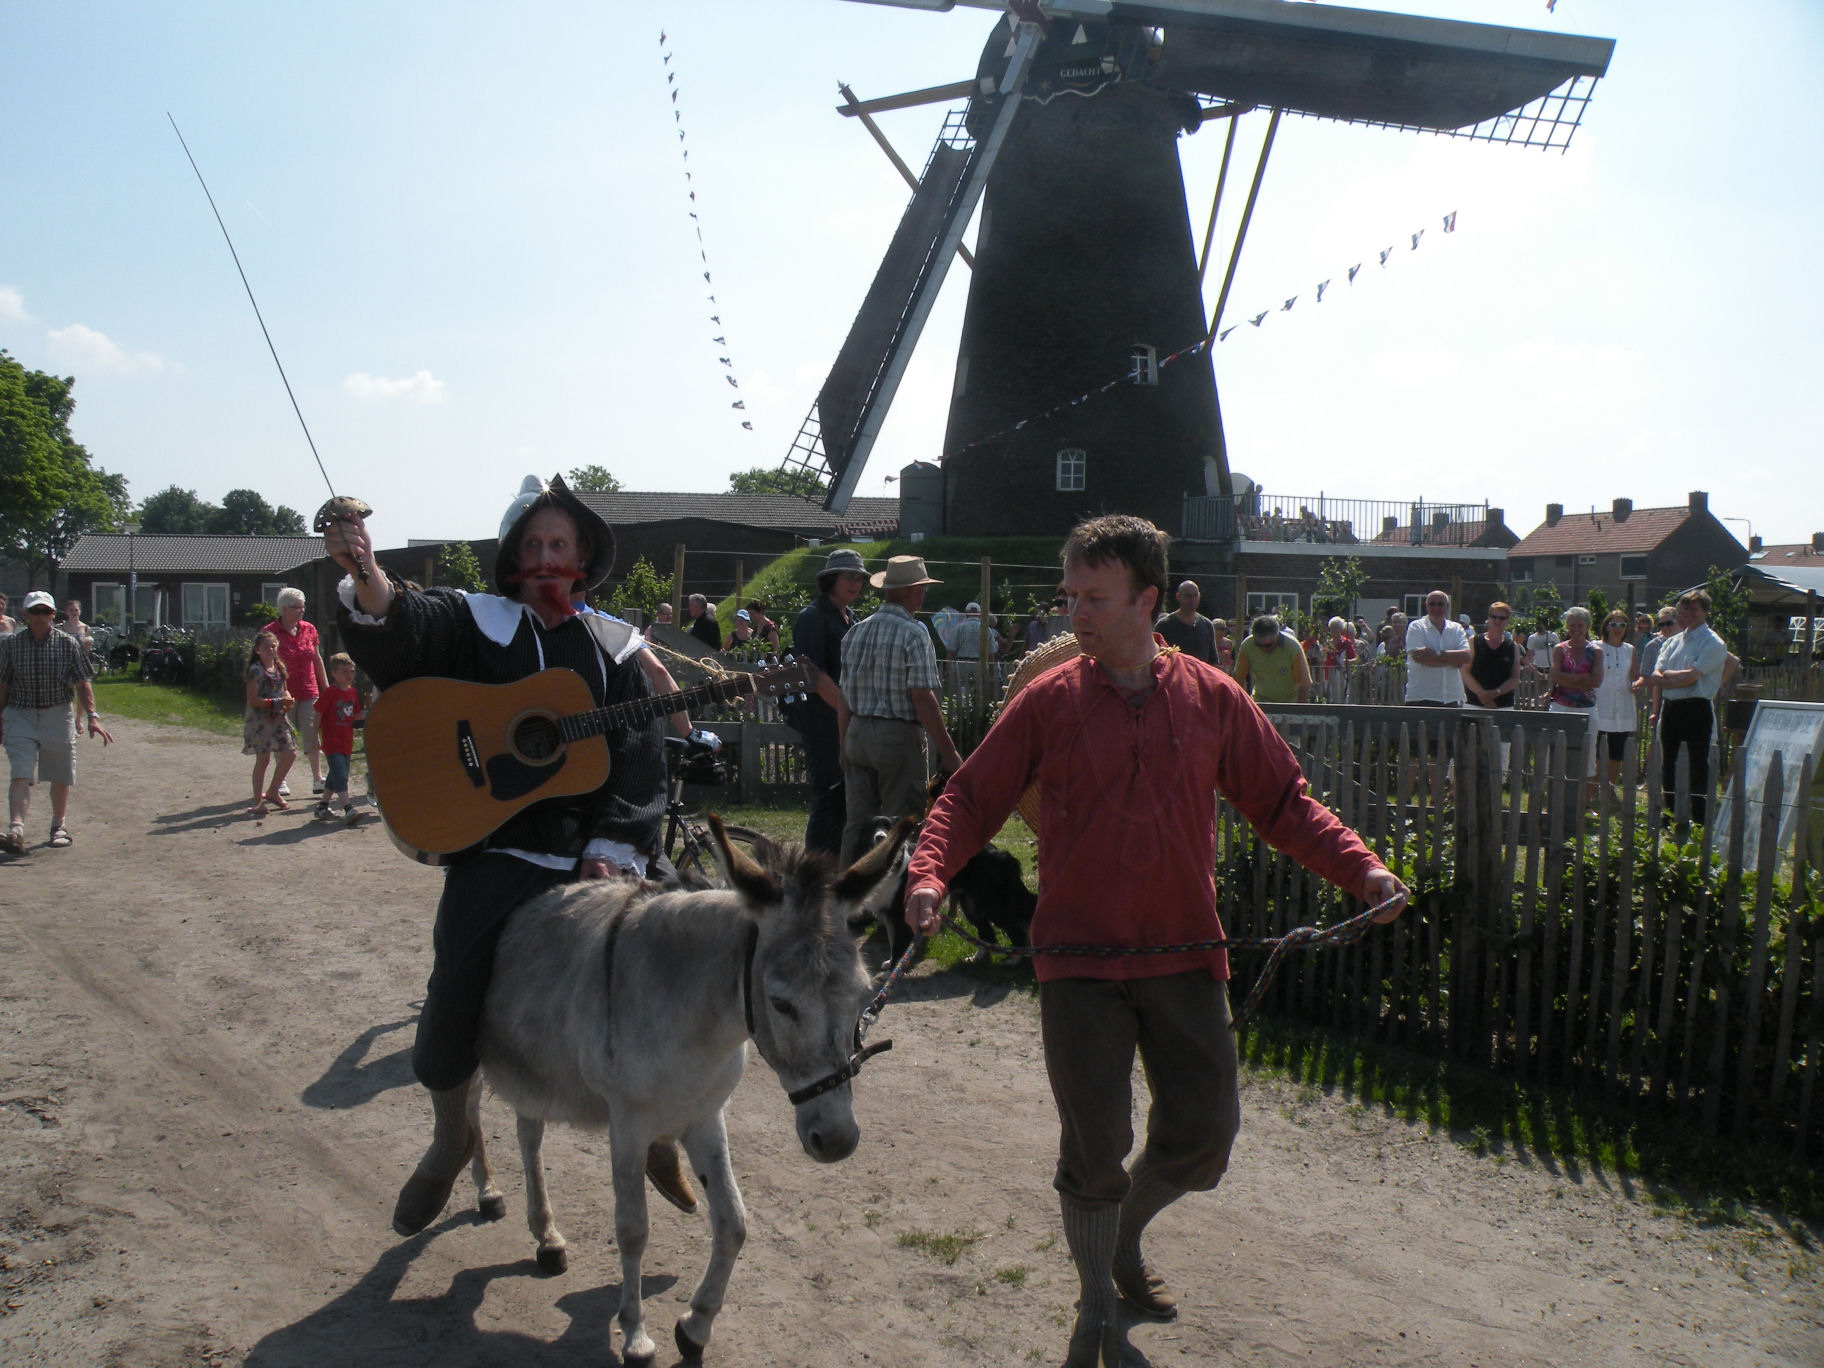 Don Quichot, Molendag Merselo 2012